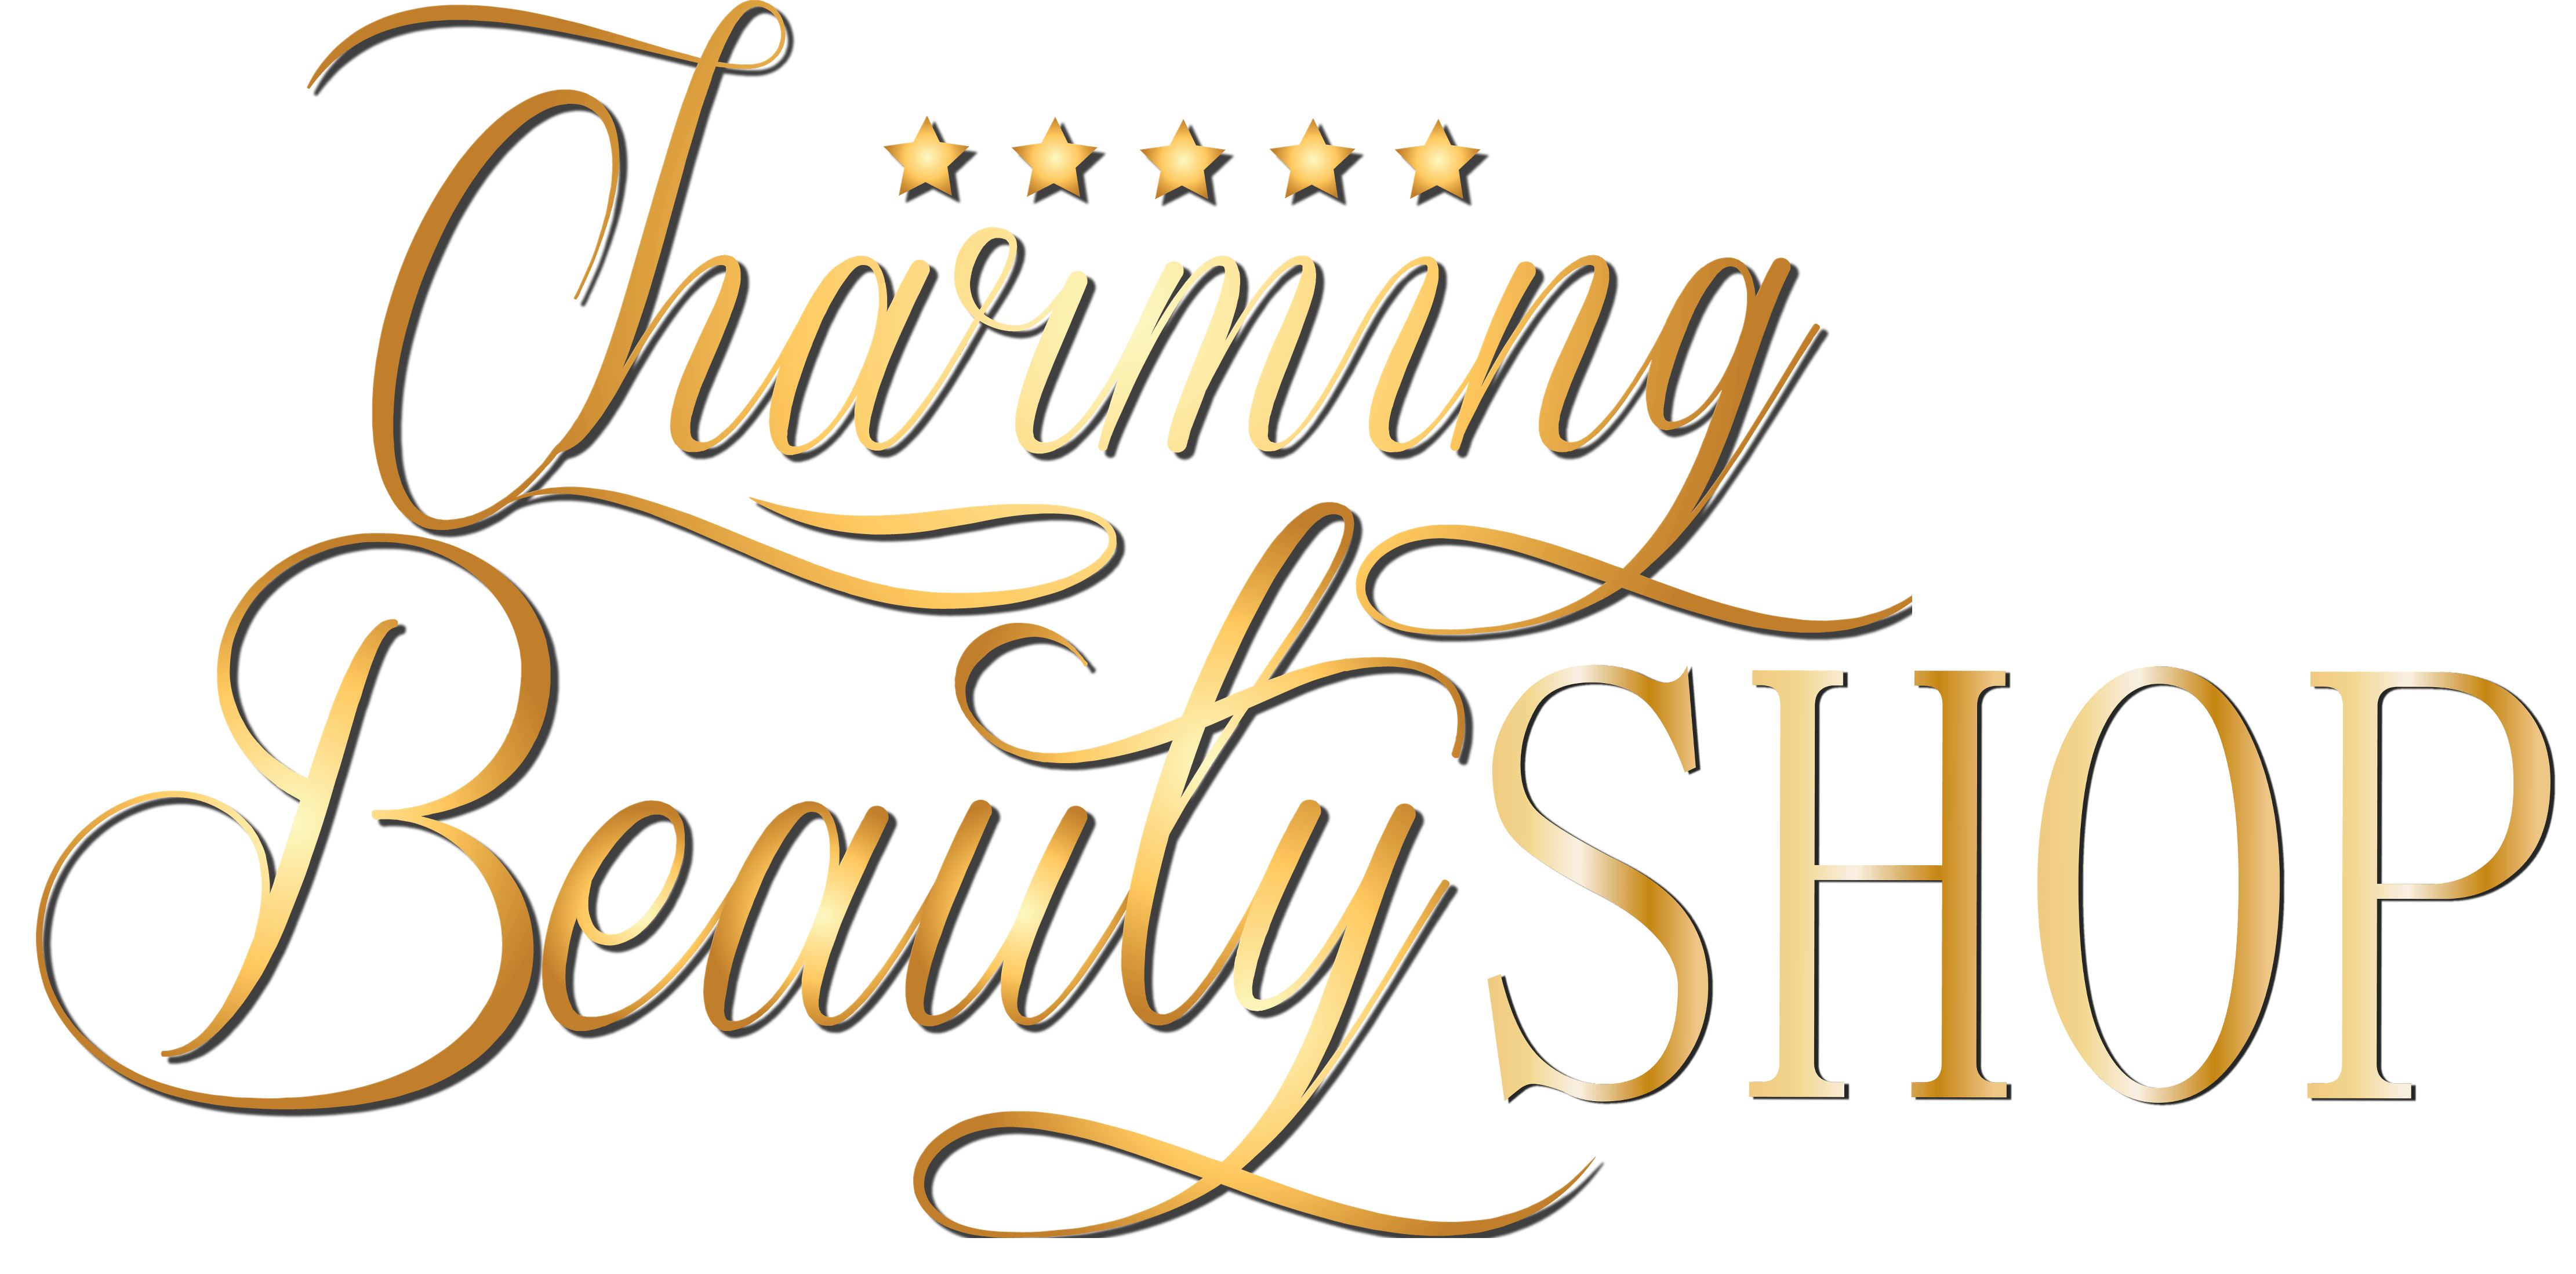 charming beauty shop